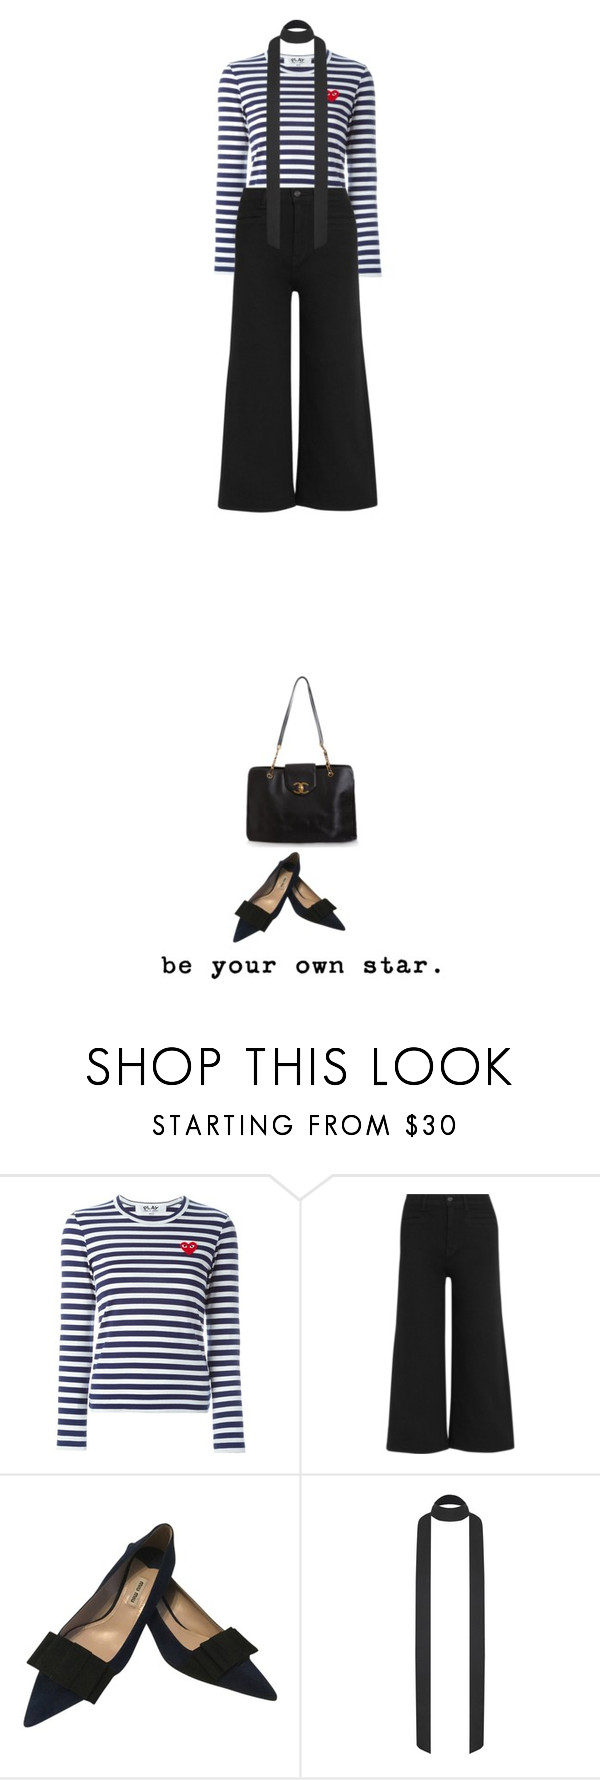 """""""your own star."""" by malou-malou ❤ liked on Polyvore featuring Play Comme des Garçons, J.Crew, Miu Miu, Chanel, women's clothing, women, female, woman, misses and juniors"""